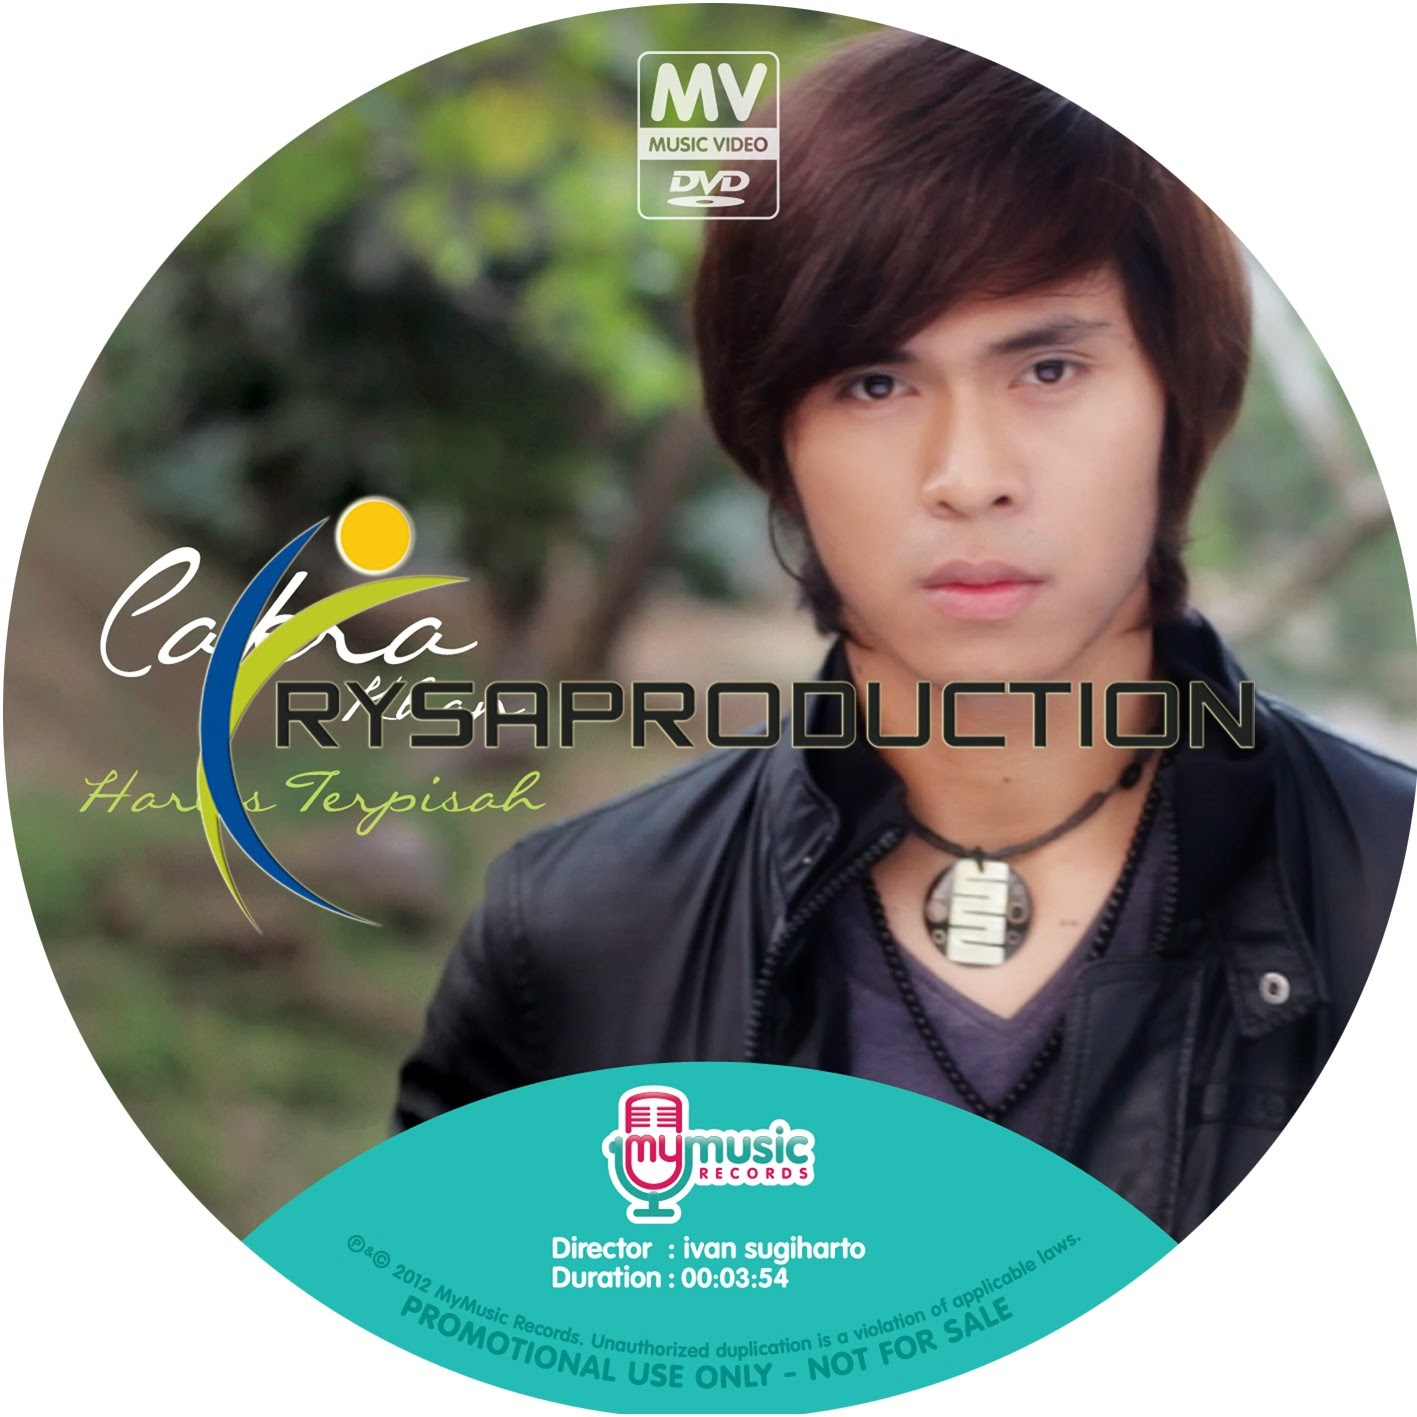 My Music Records Cakra Khan